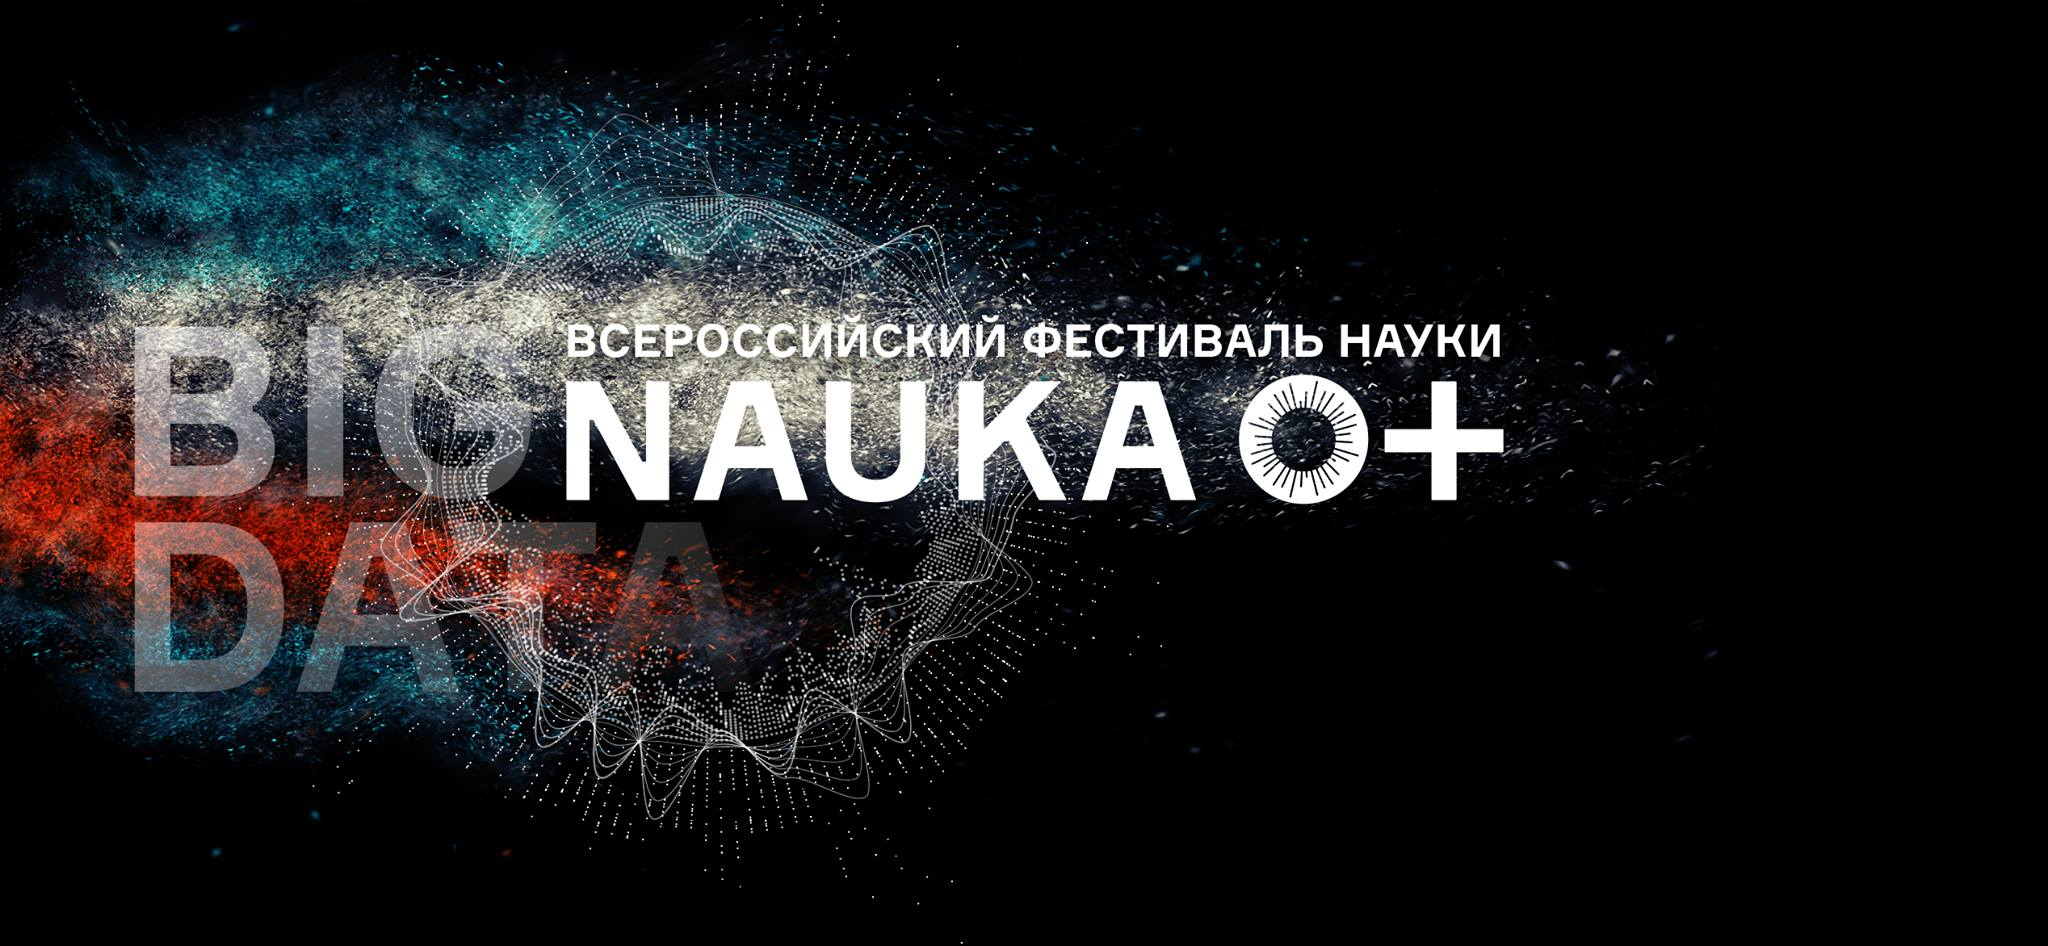 MCU at the All-Russia Science Festival 2018